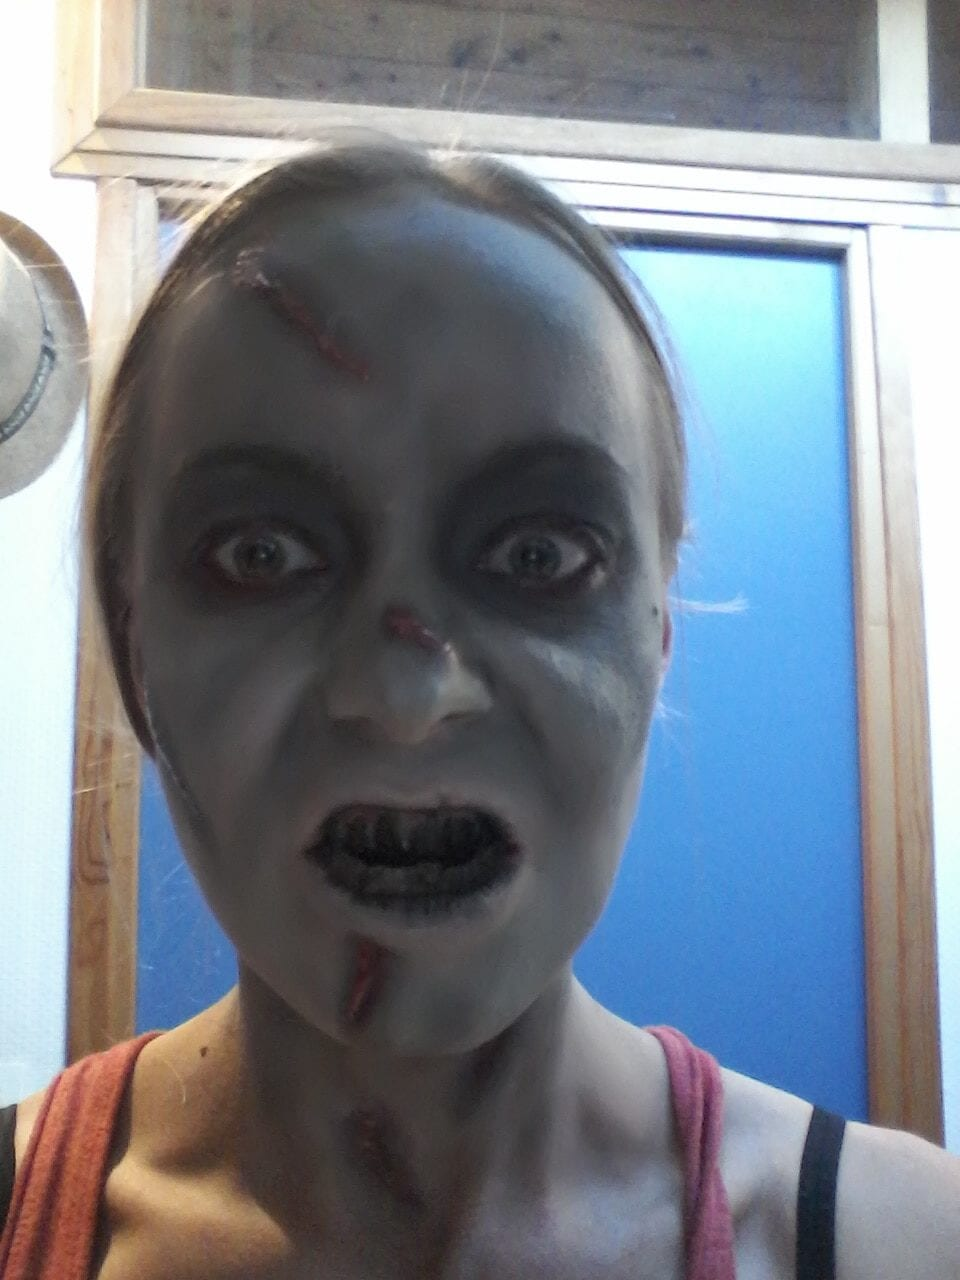 Maquillage halloween - l'exorciste - effrayant